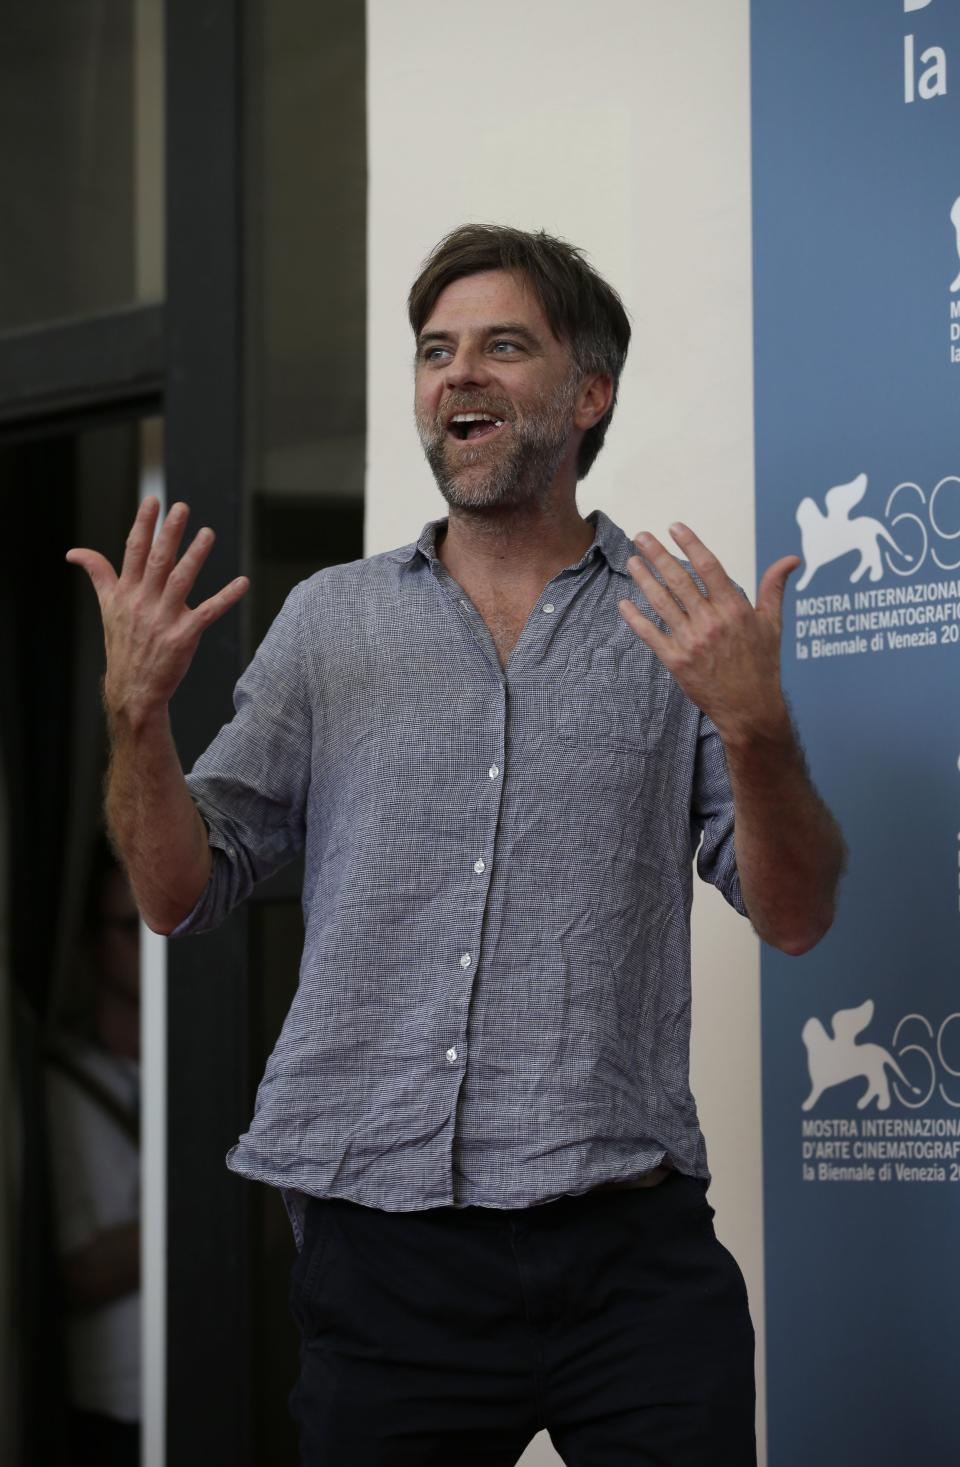 Director Paul Thomas Anderson arrives for the photo call for the film 'The Master' at the 69th edition of the Venice Film Festival in Venice, Italy, Saturday, Sept. 1, 2012. (AP Photo/Andrew Medichini)